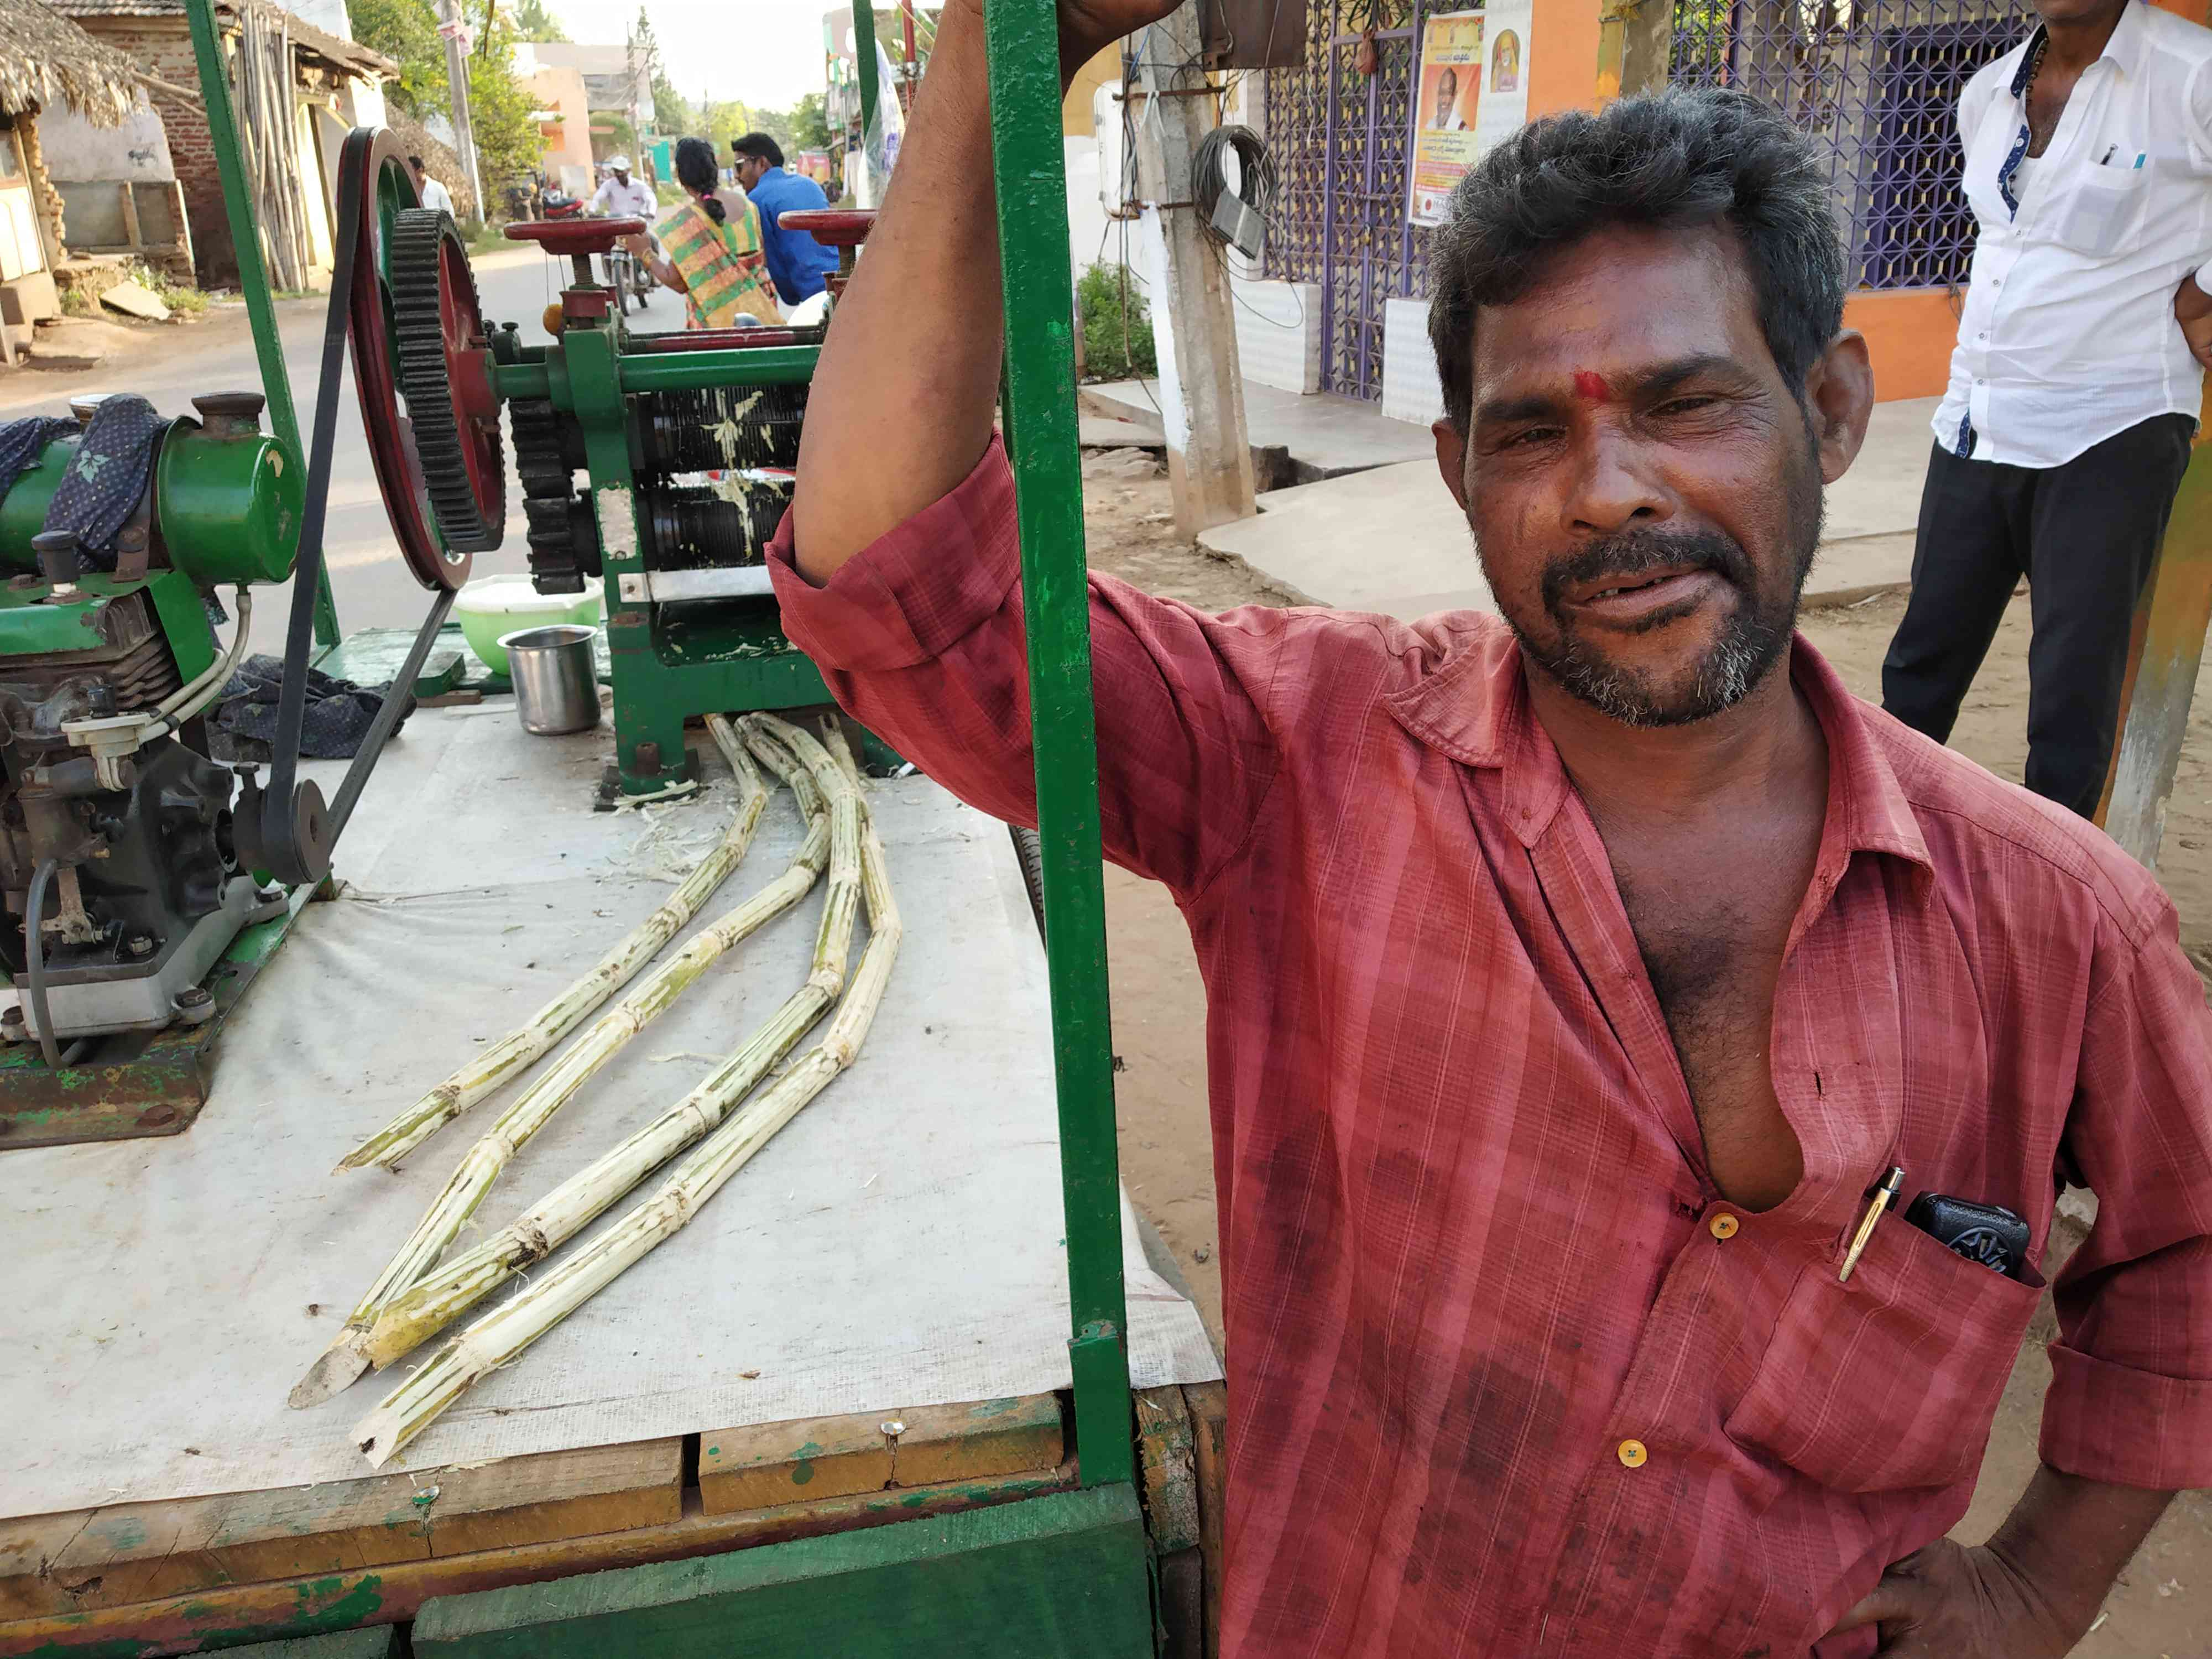 Kola Srinivas is a sugarcane juice vendor in Narsapuram. Photo credit: Sruthisagar Yamunan